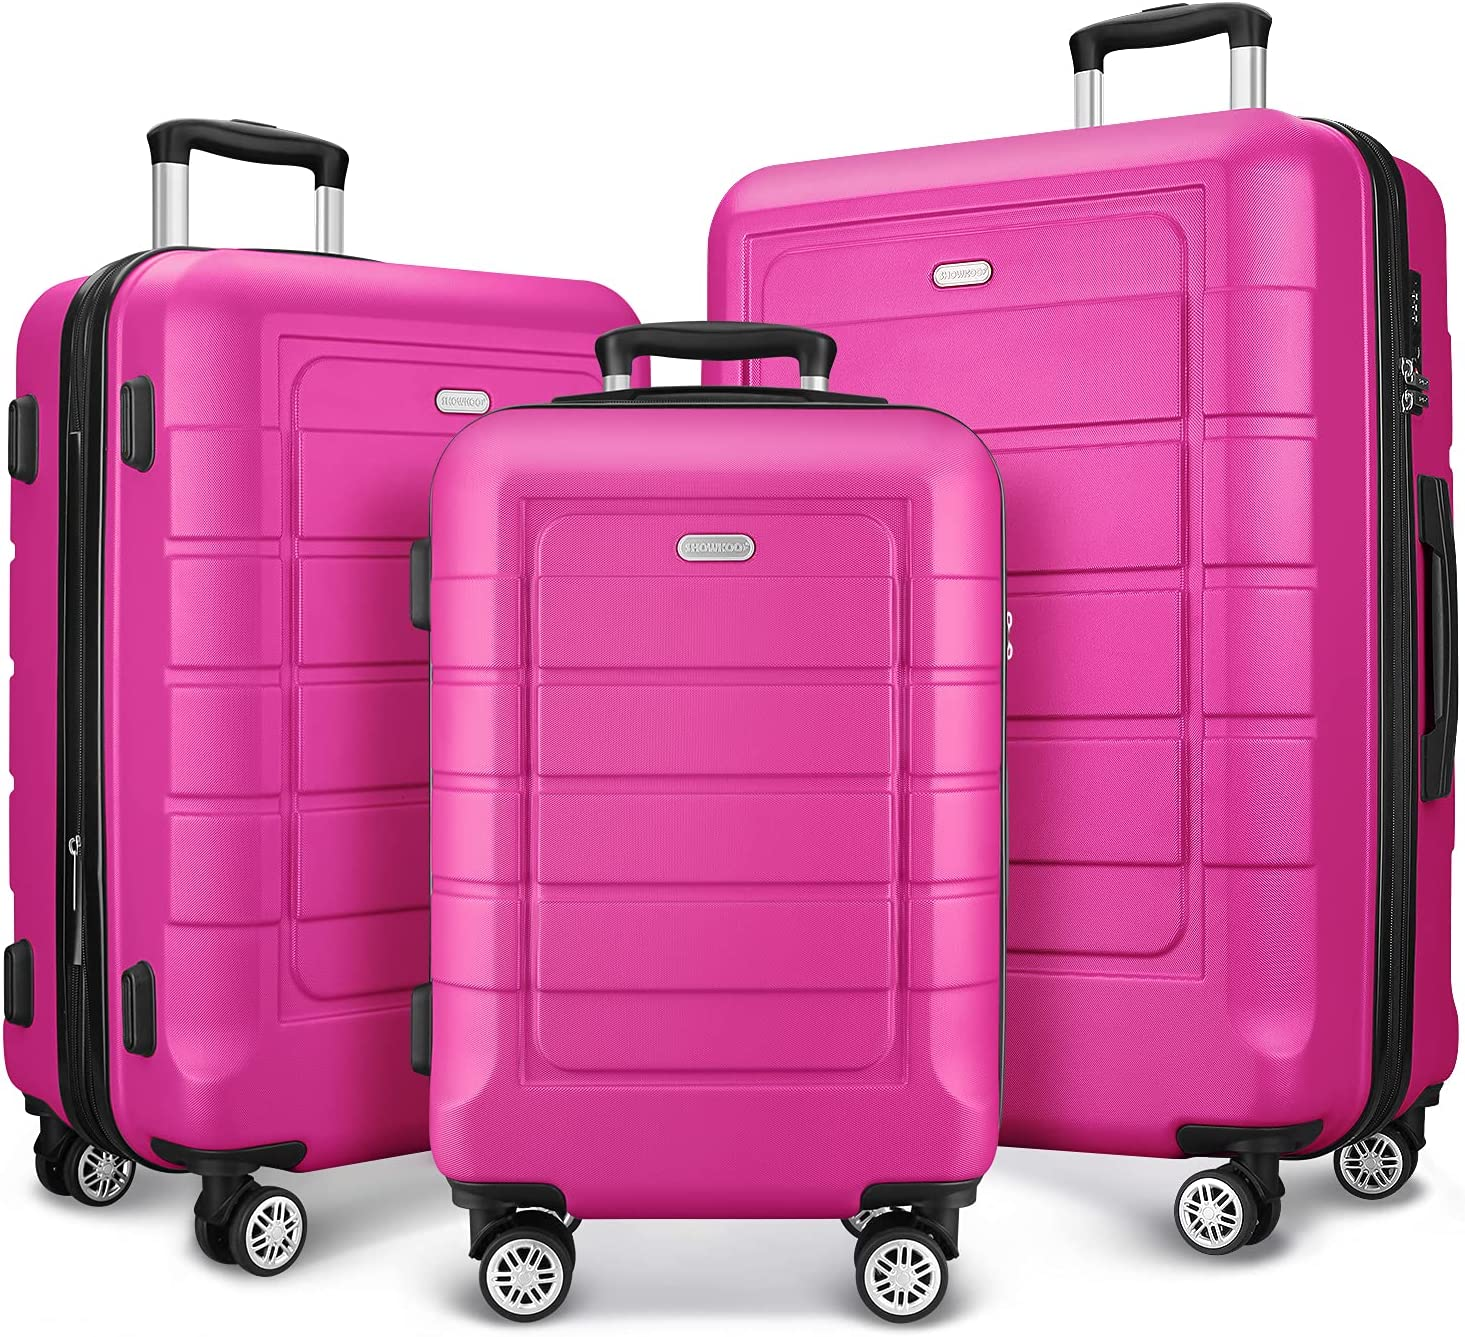 SHOWKOO Super popular specialty store Luggage Sets Expandable PC+ABS Double Suitcase W Deluxe Durable